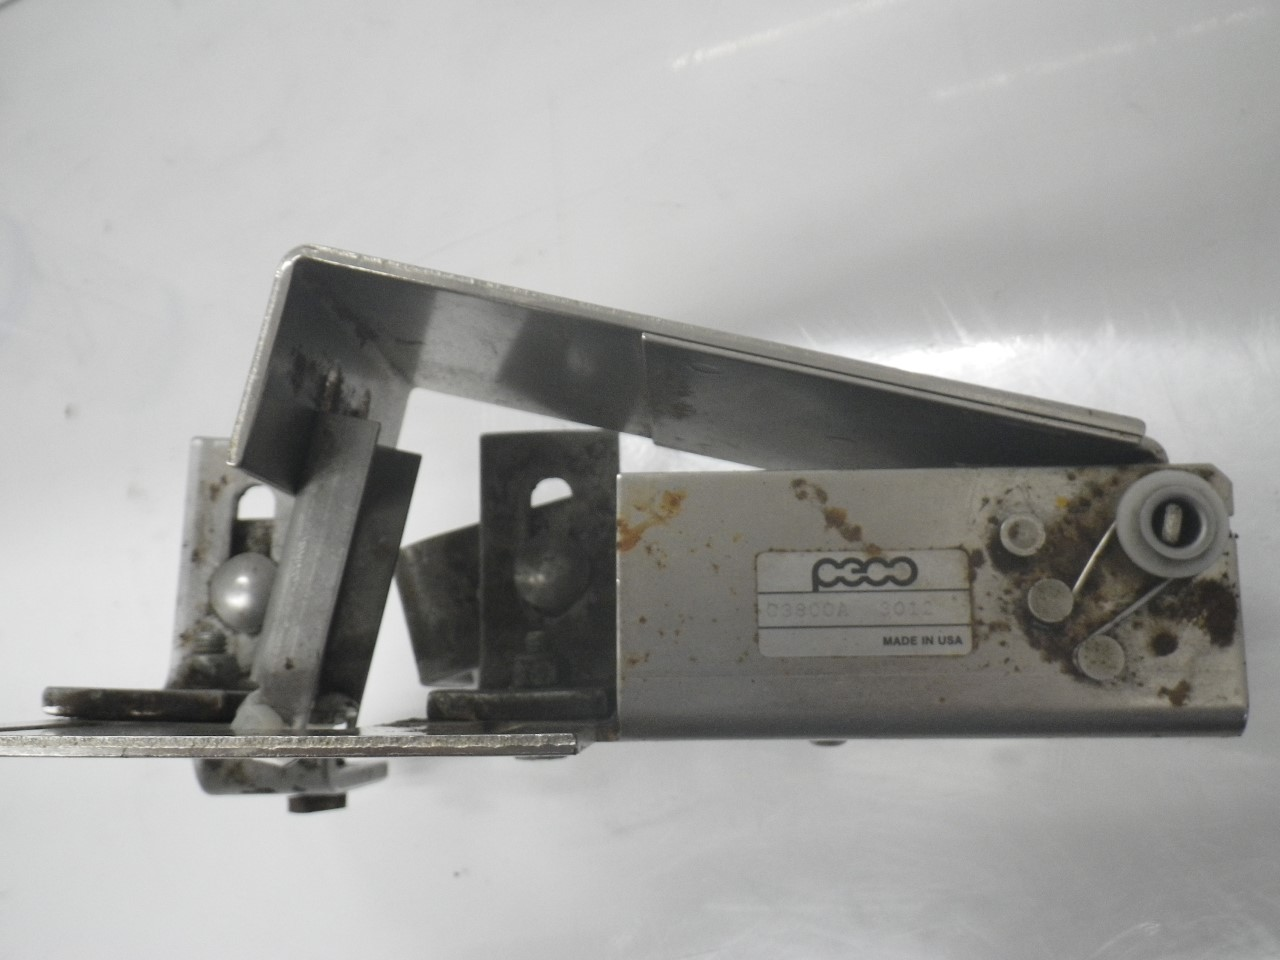 IMGP6937C-3801 C-3800A 3012Peco Electro-arm Controls forPackage Inspection(Used Tested) (14)